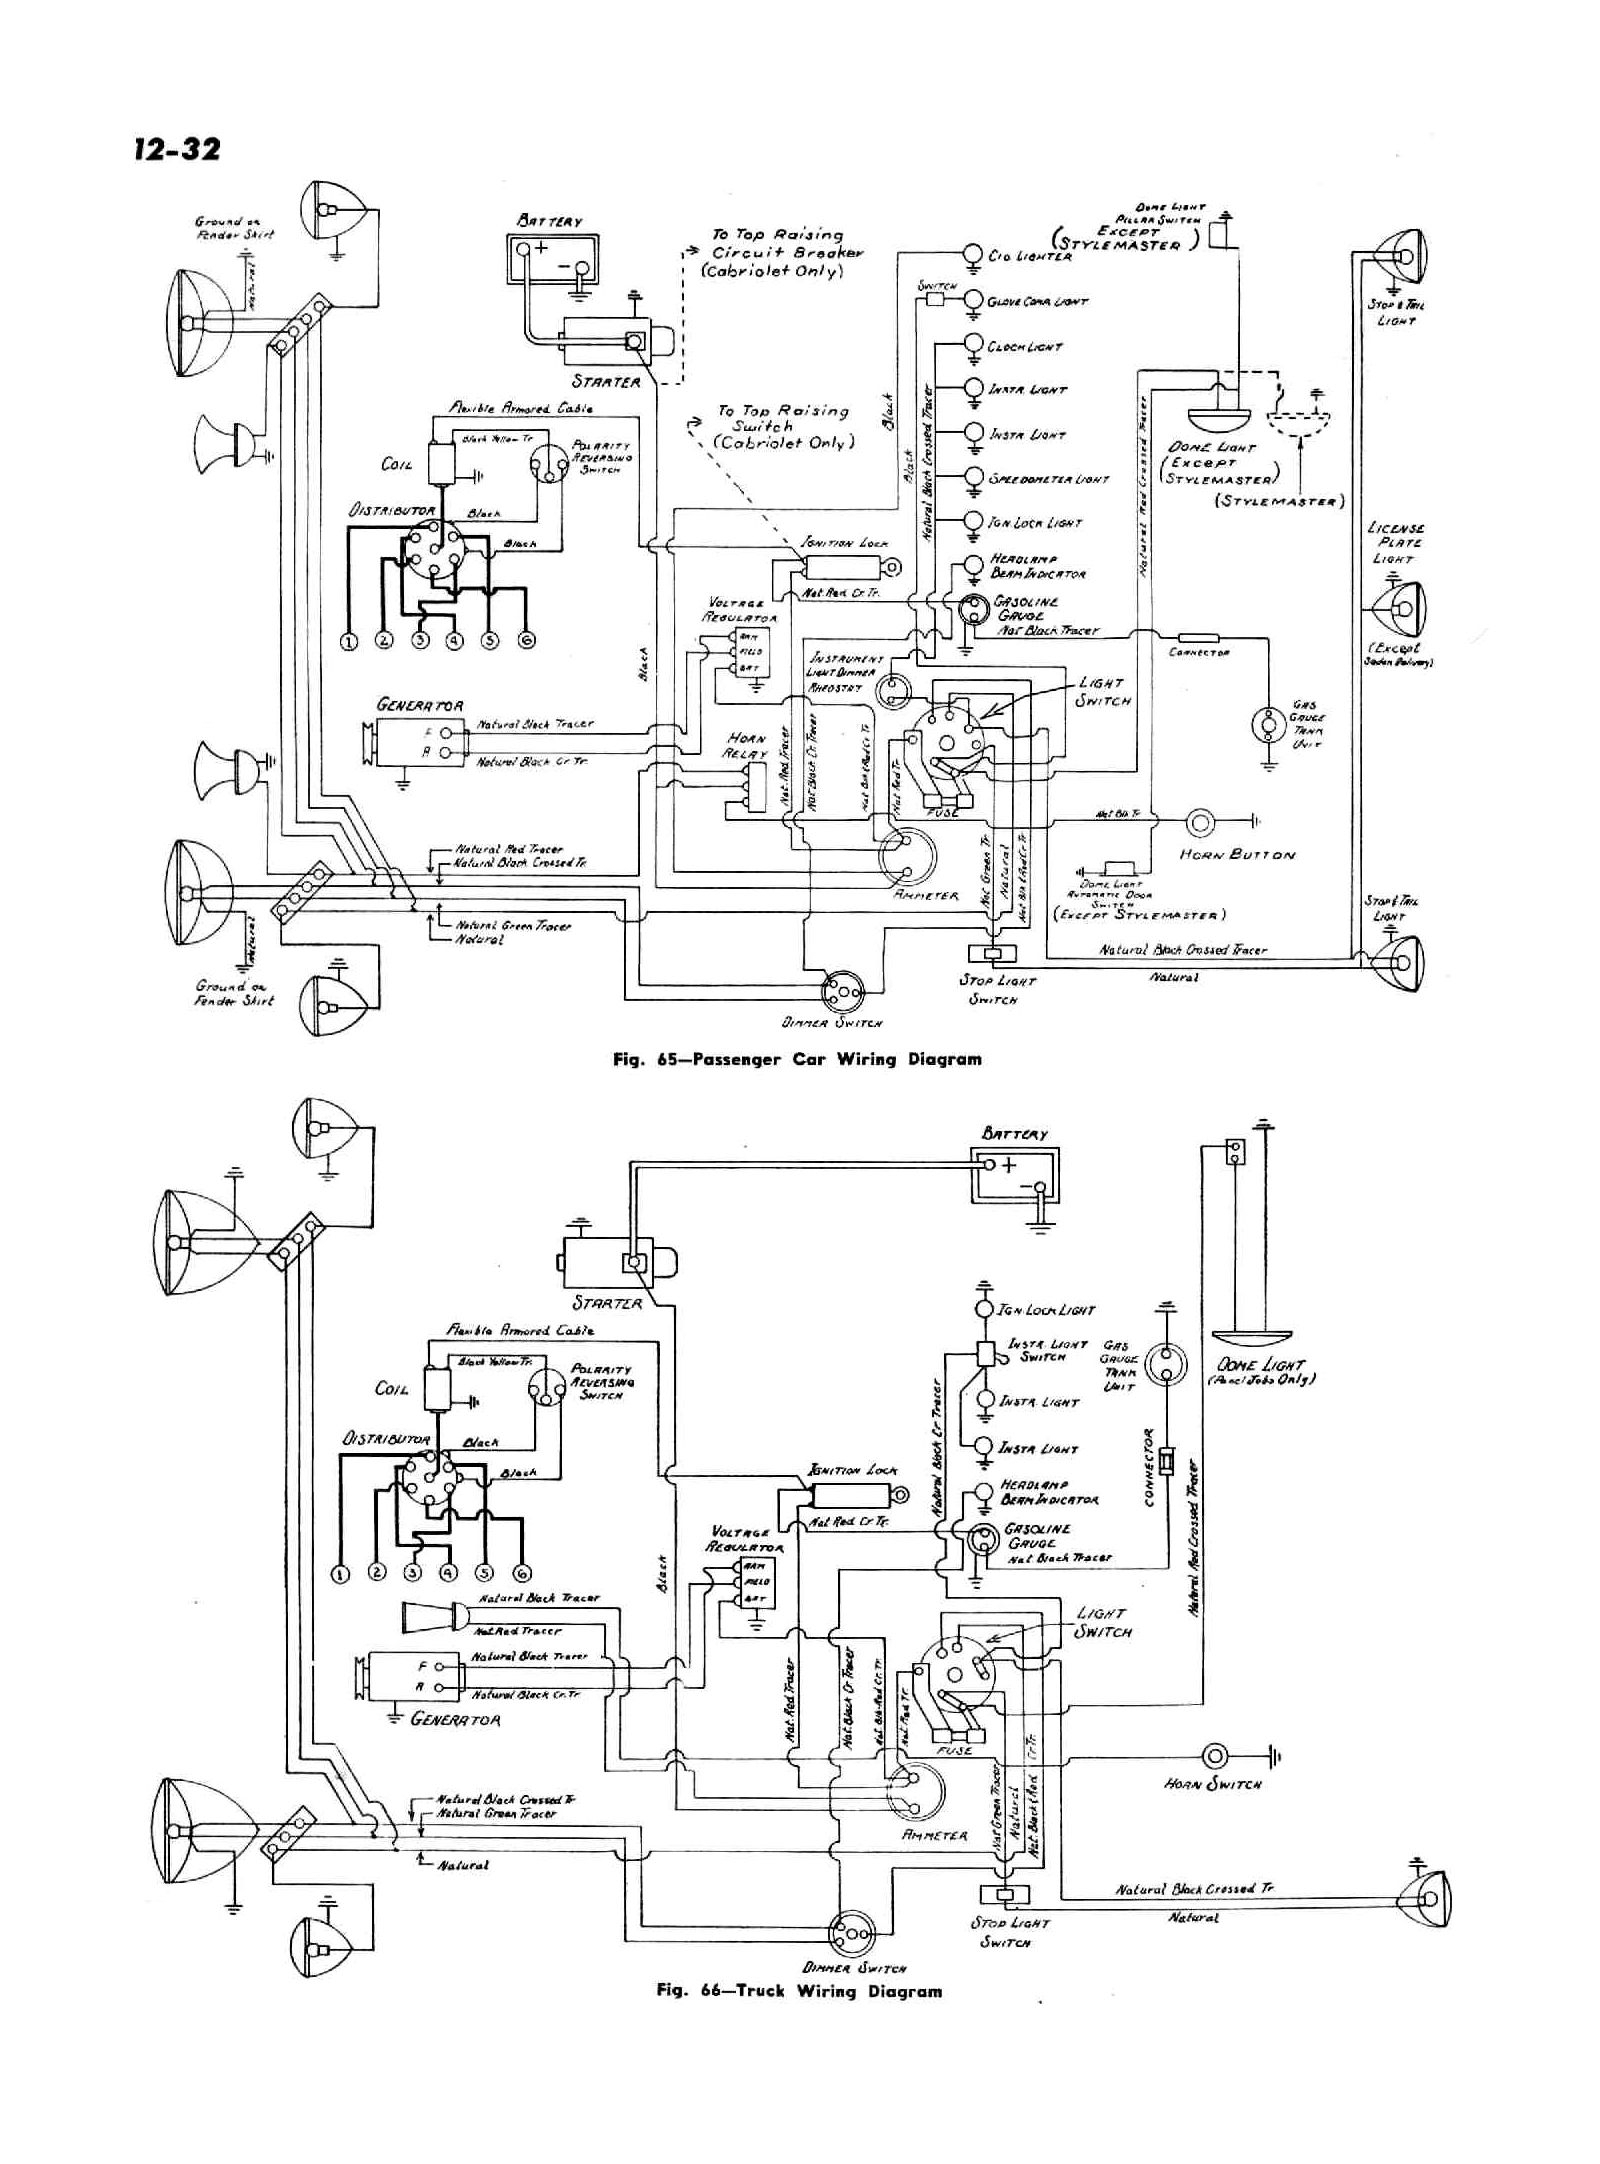 Snap Truck Tail Light Wiring Diagram 31 Images Ford 1963 Chevy Diagrams